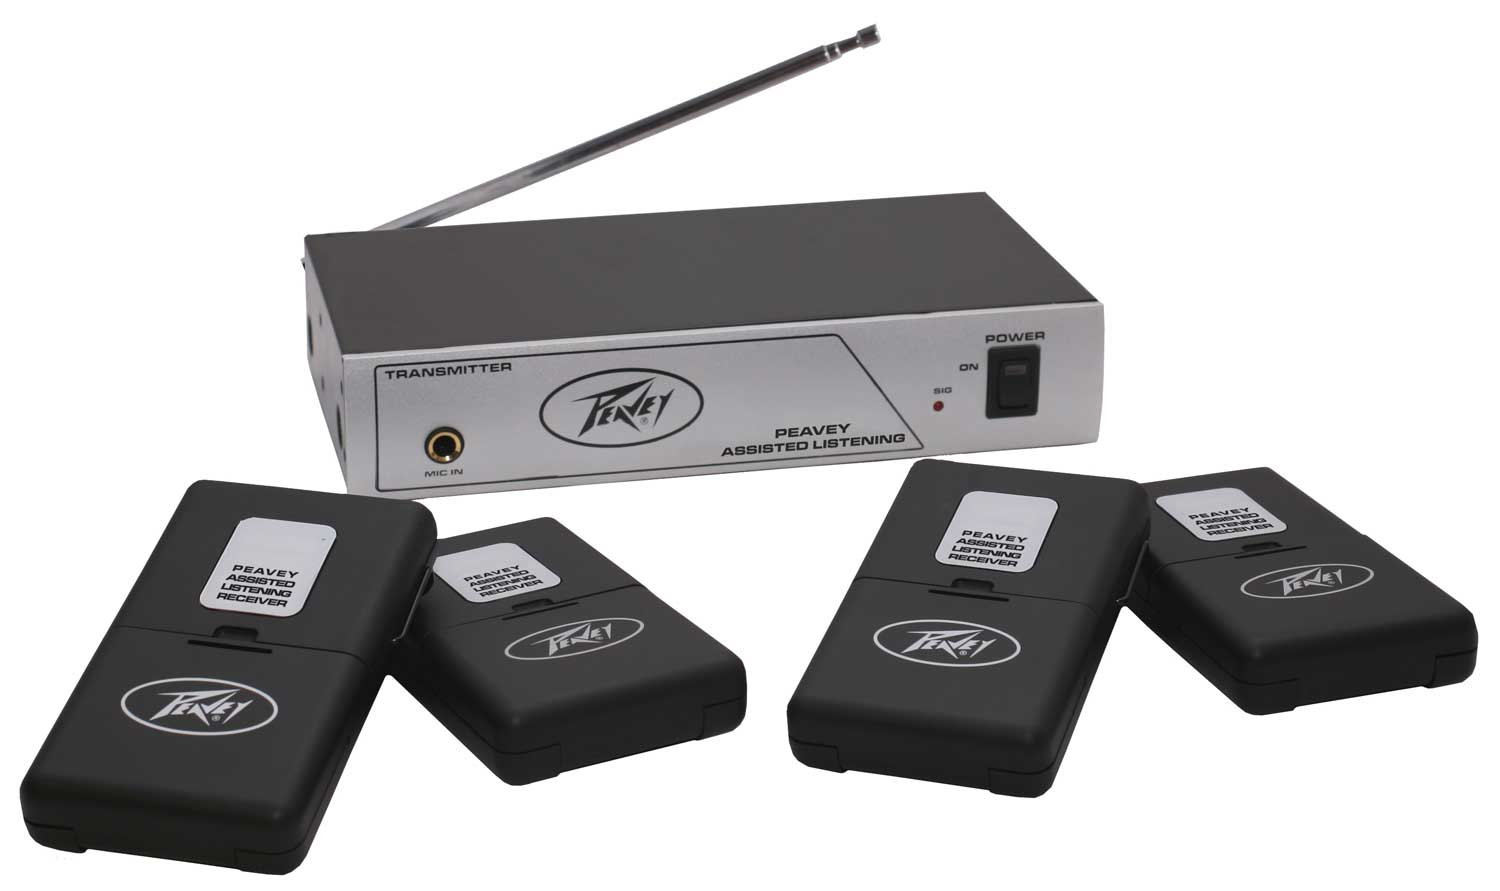 Peavey Peavey Assisted Listening Sys. 72.1 MHz Includes Transmitter Four Receivers & Four Standard Earbuds (3010620)